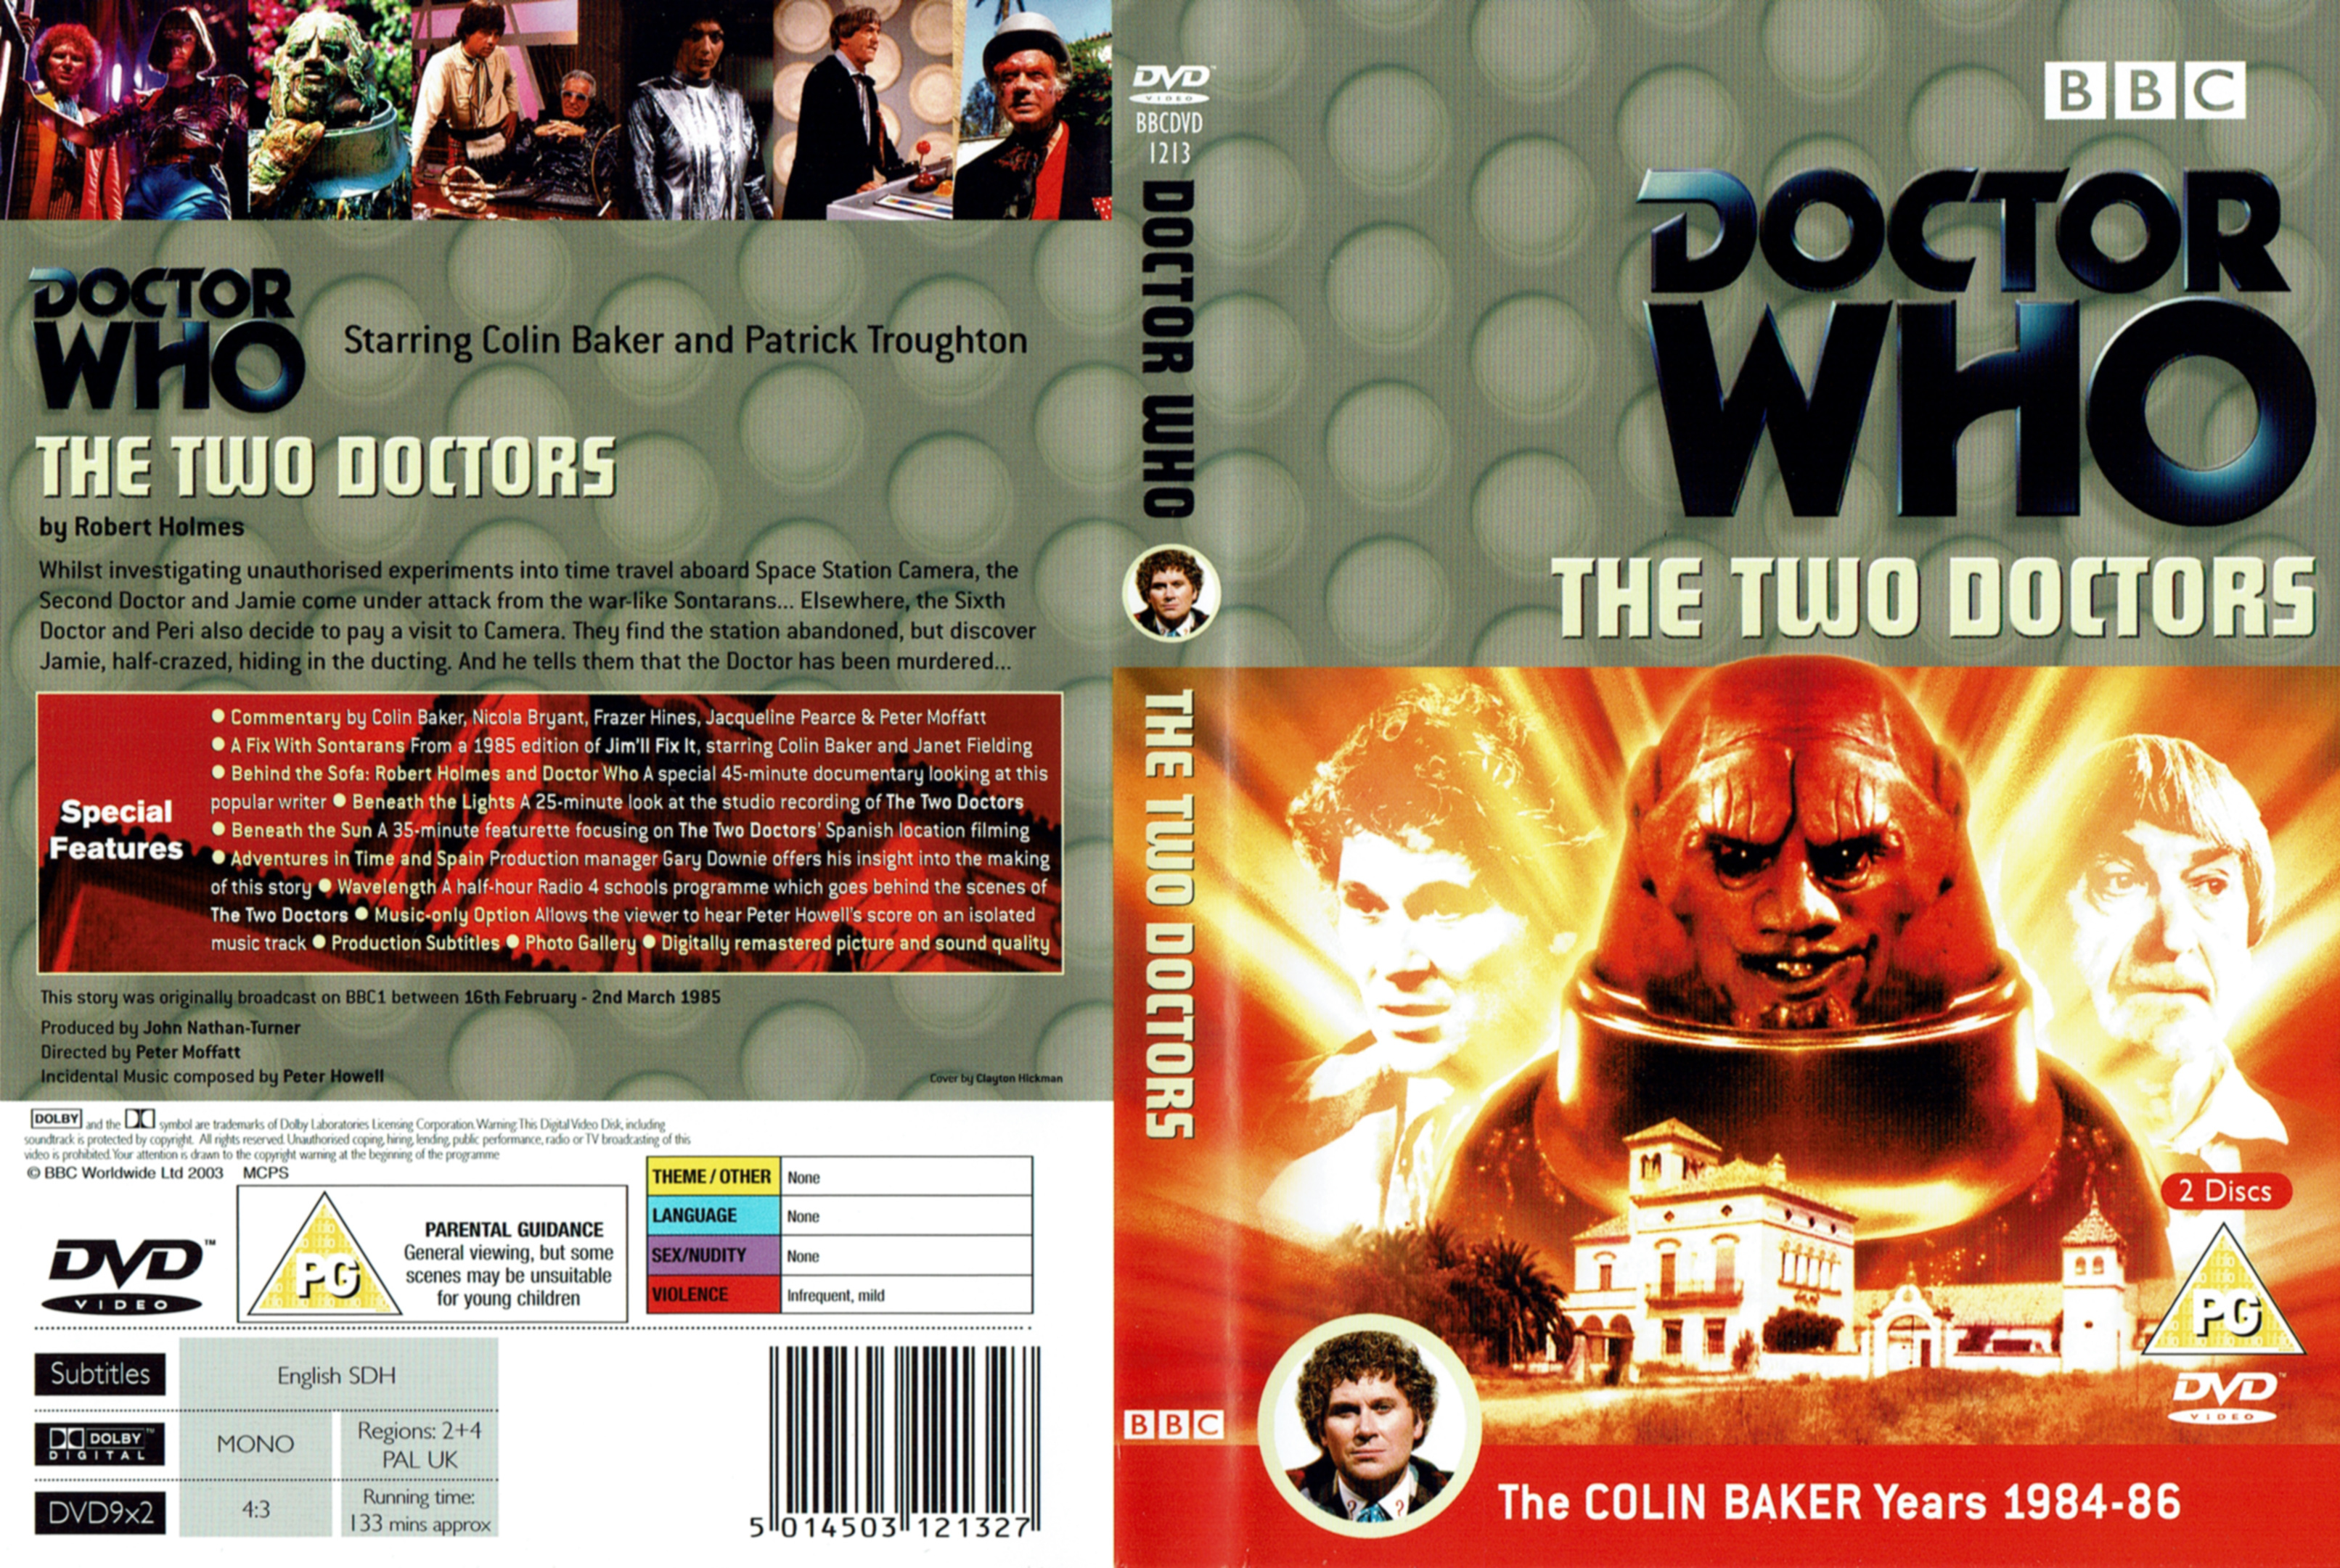 The Two Doctors DVD